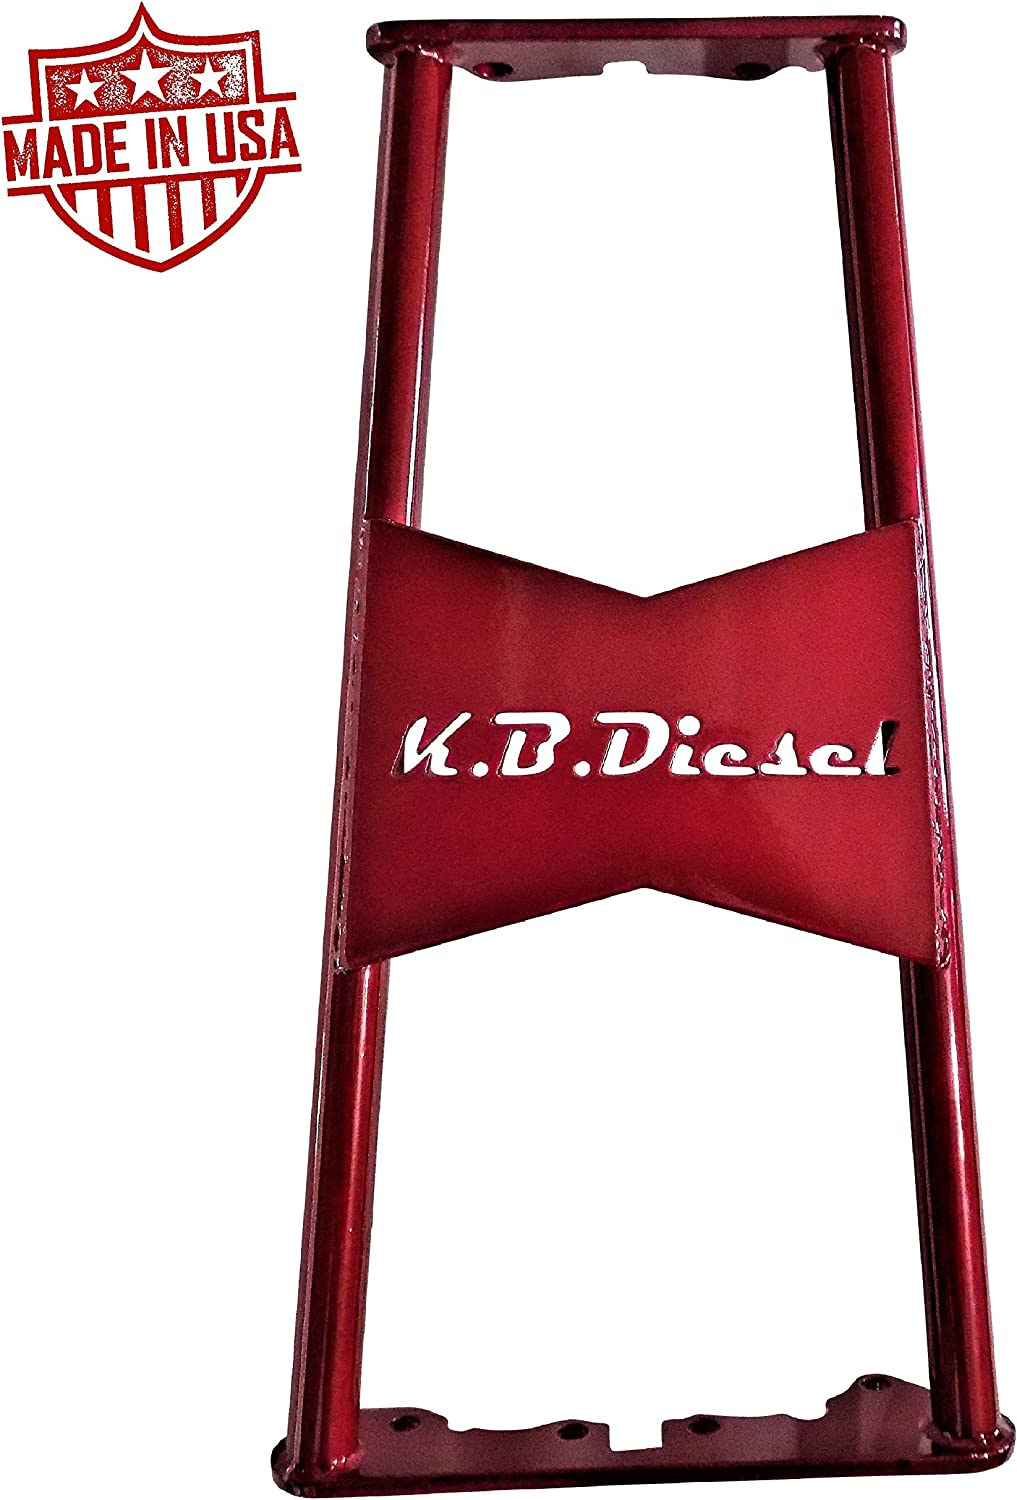 Dark Candy Red KBDP ZF6 Transmission Brace for 2001-2006 Chevy GMC 6.6l Duramax LB7 LLY LBZ Made In USA